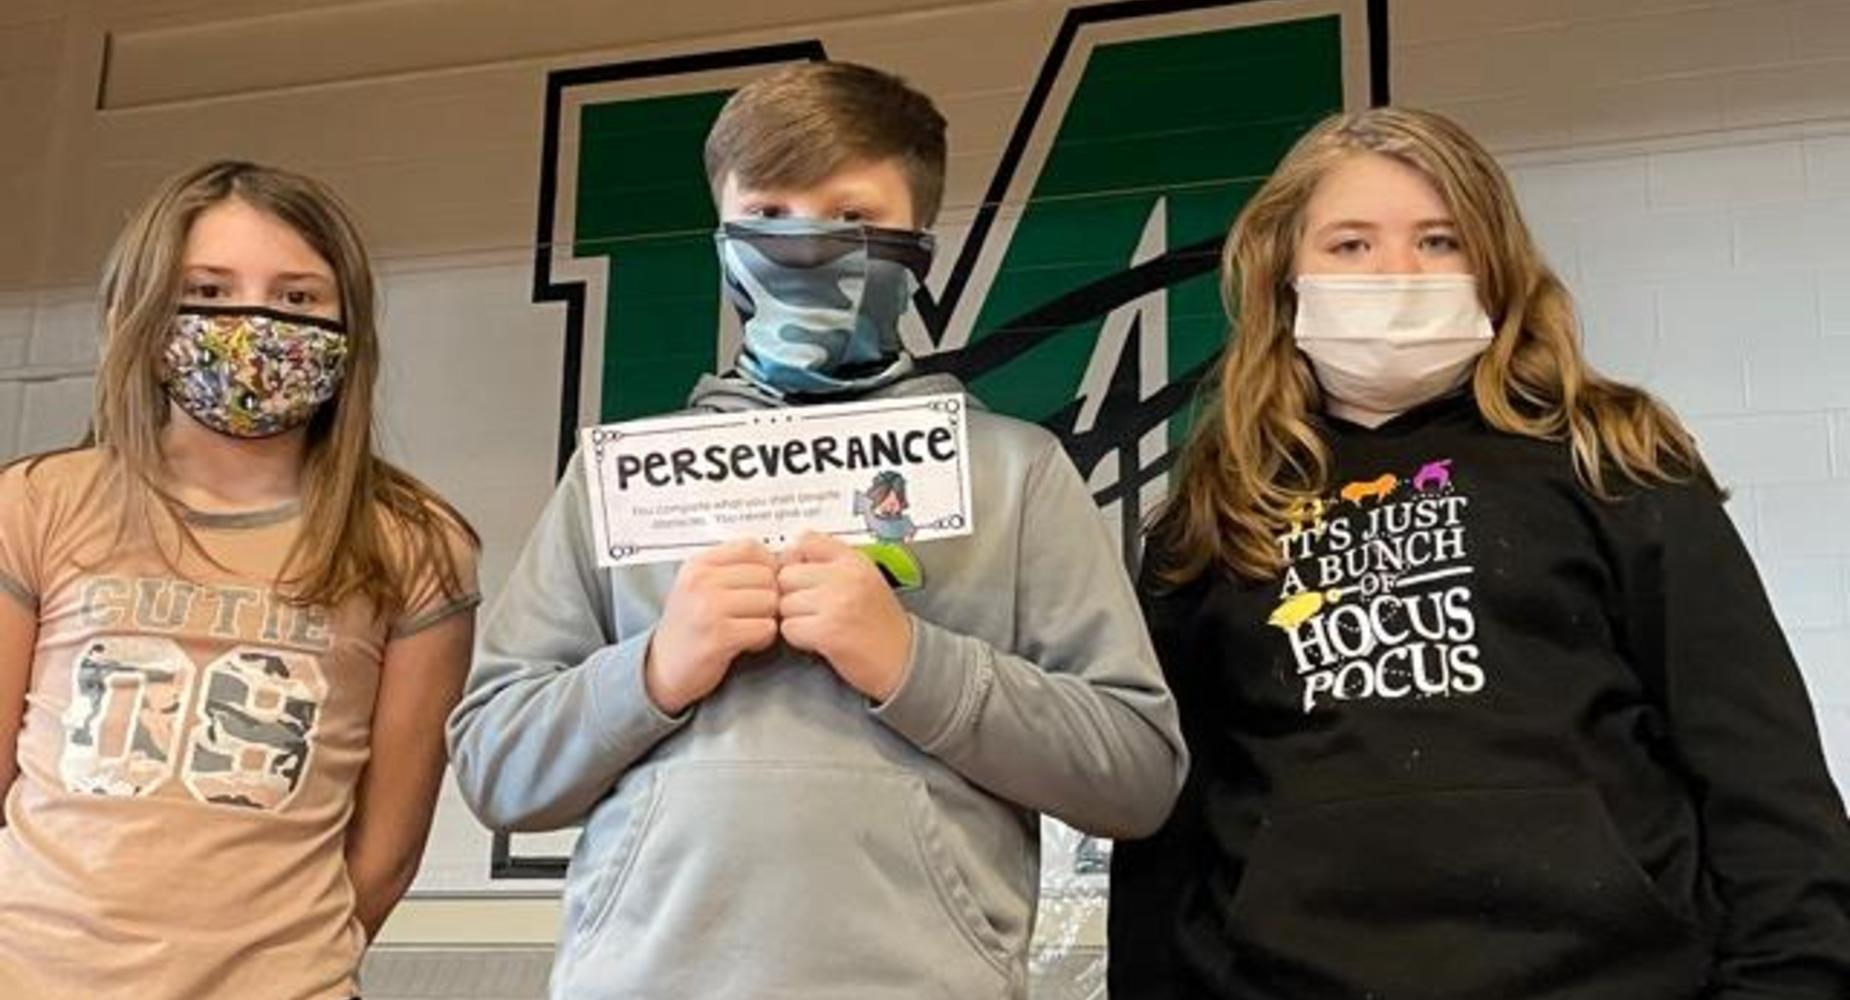 students with perseverance sign